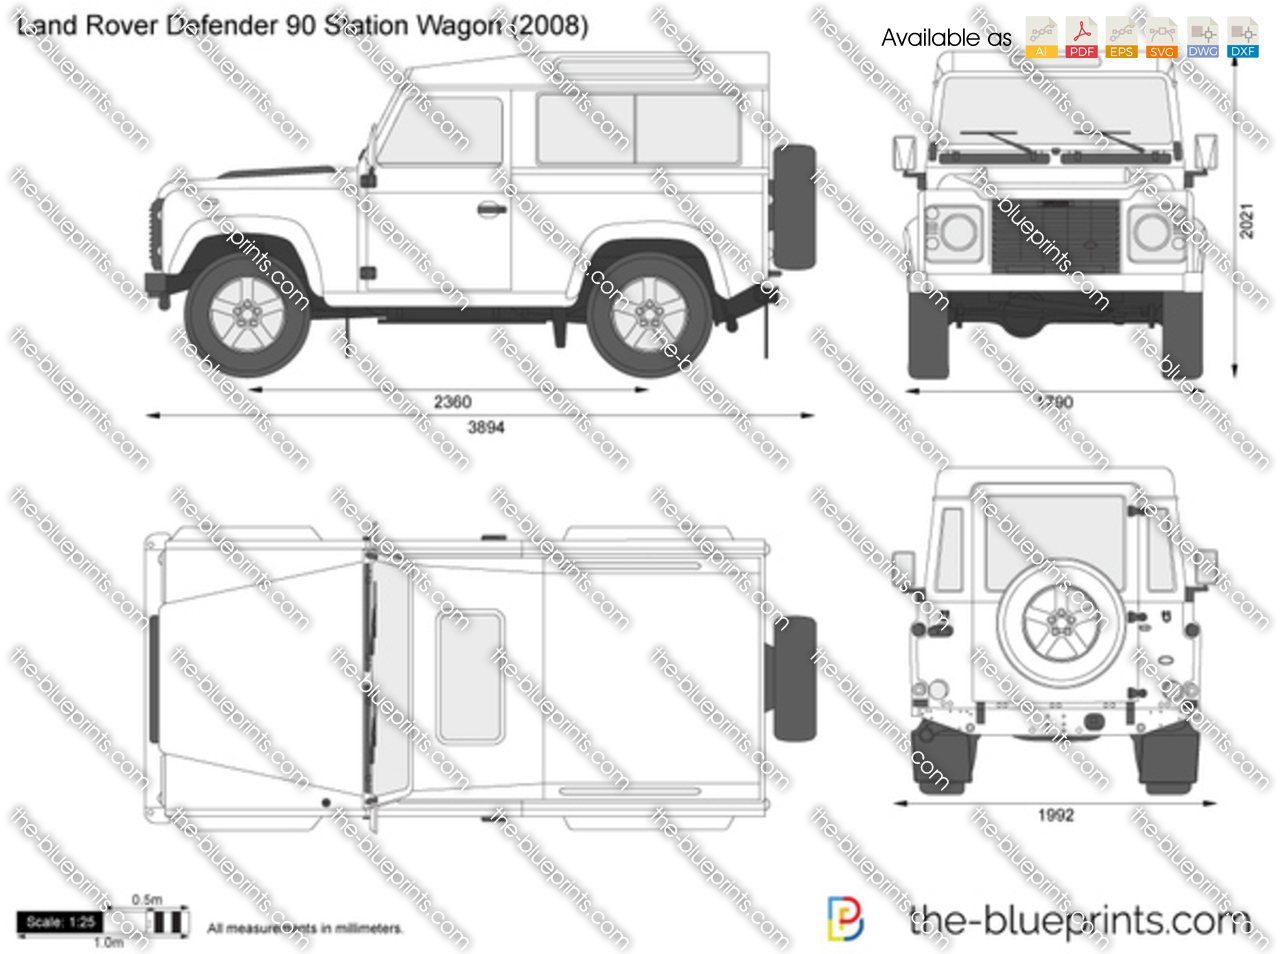 Land Rover Defender 90 Station Wagon 2014